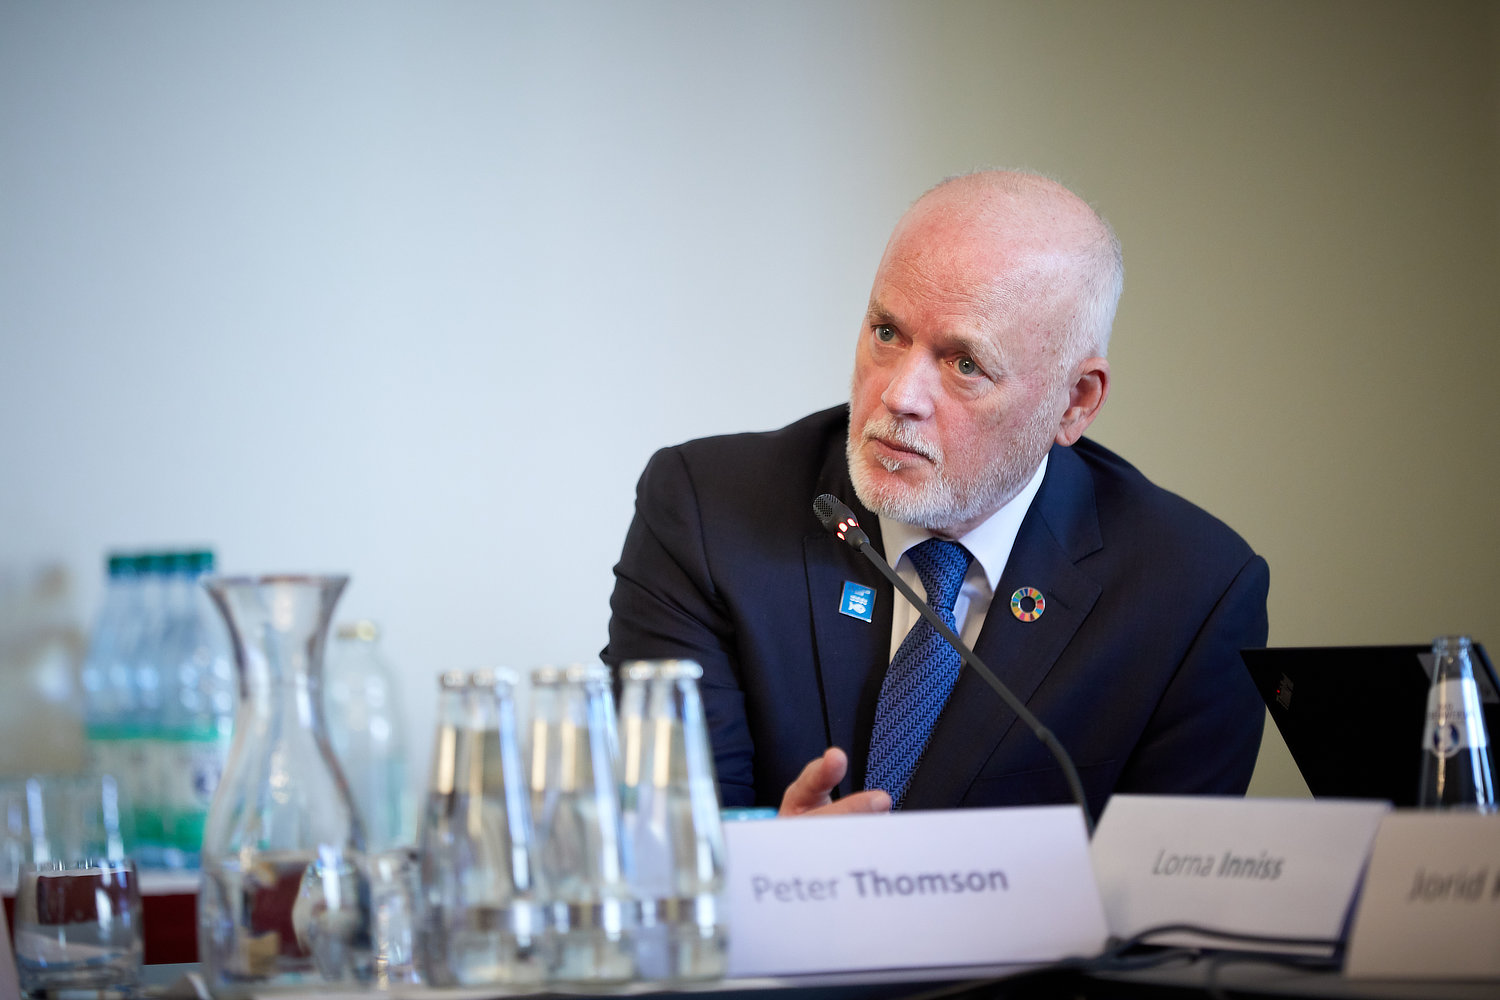 Peter Thomson (Vereinte Nationen)